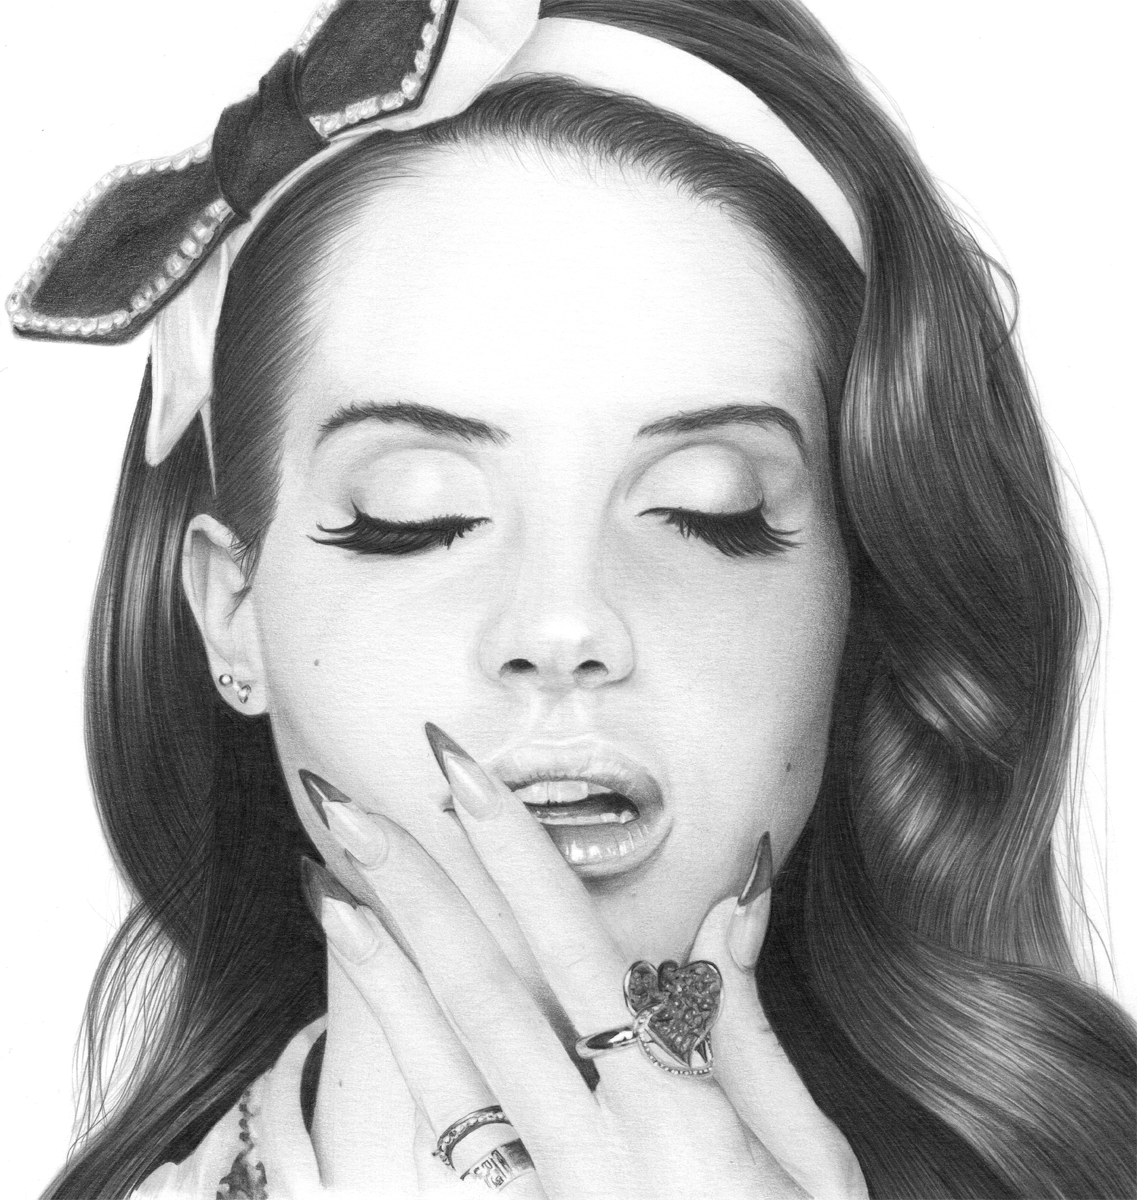 Lana Del Rey Drawing | Cool Art | Pinterest